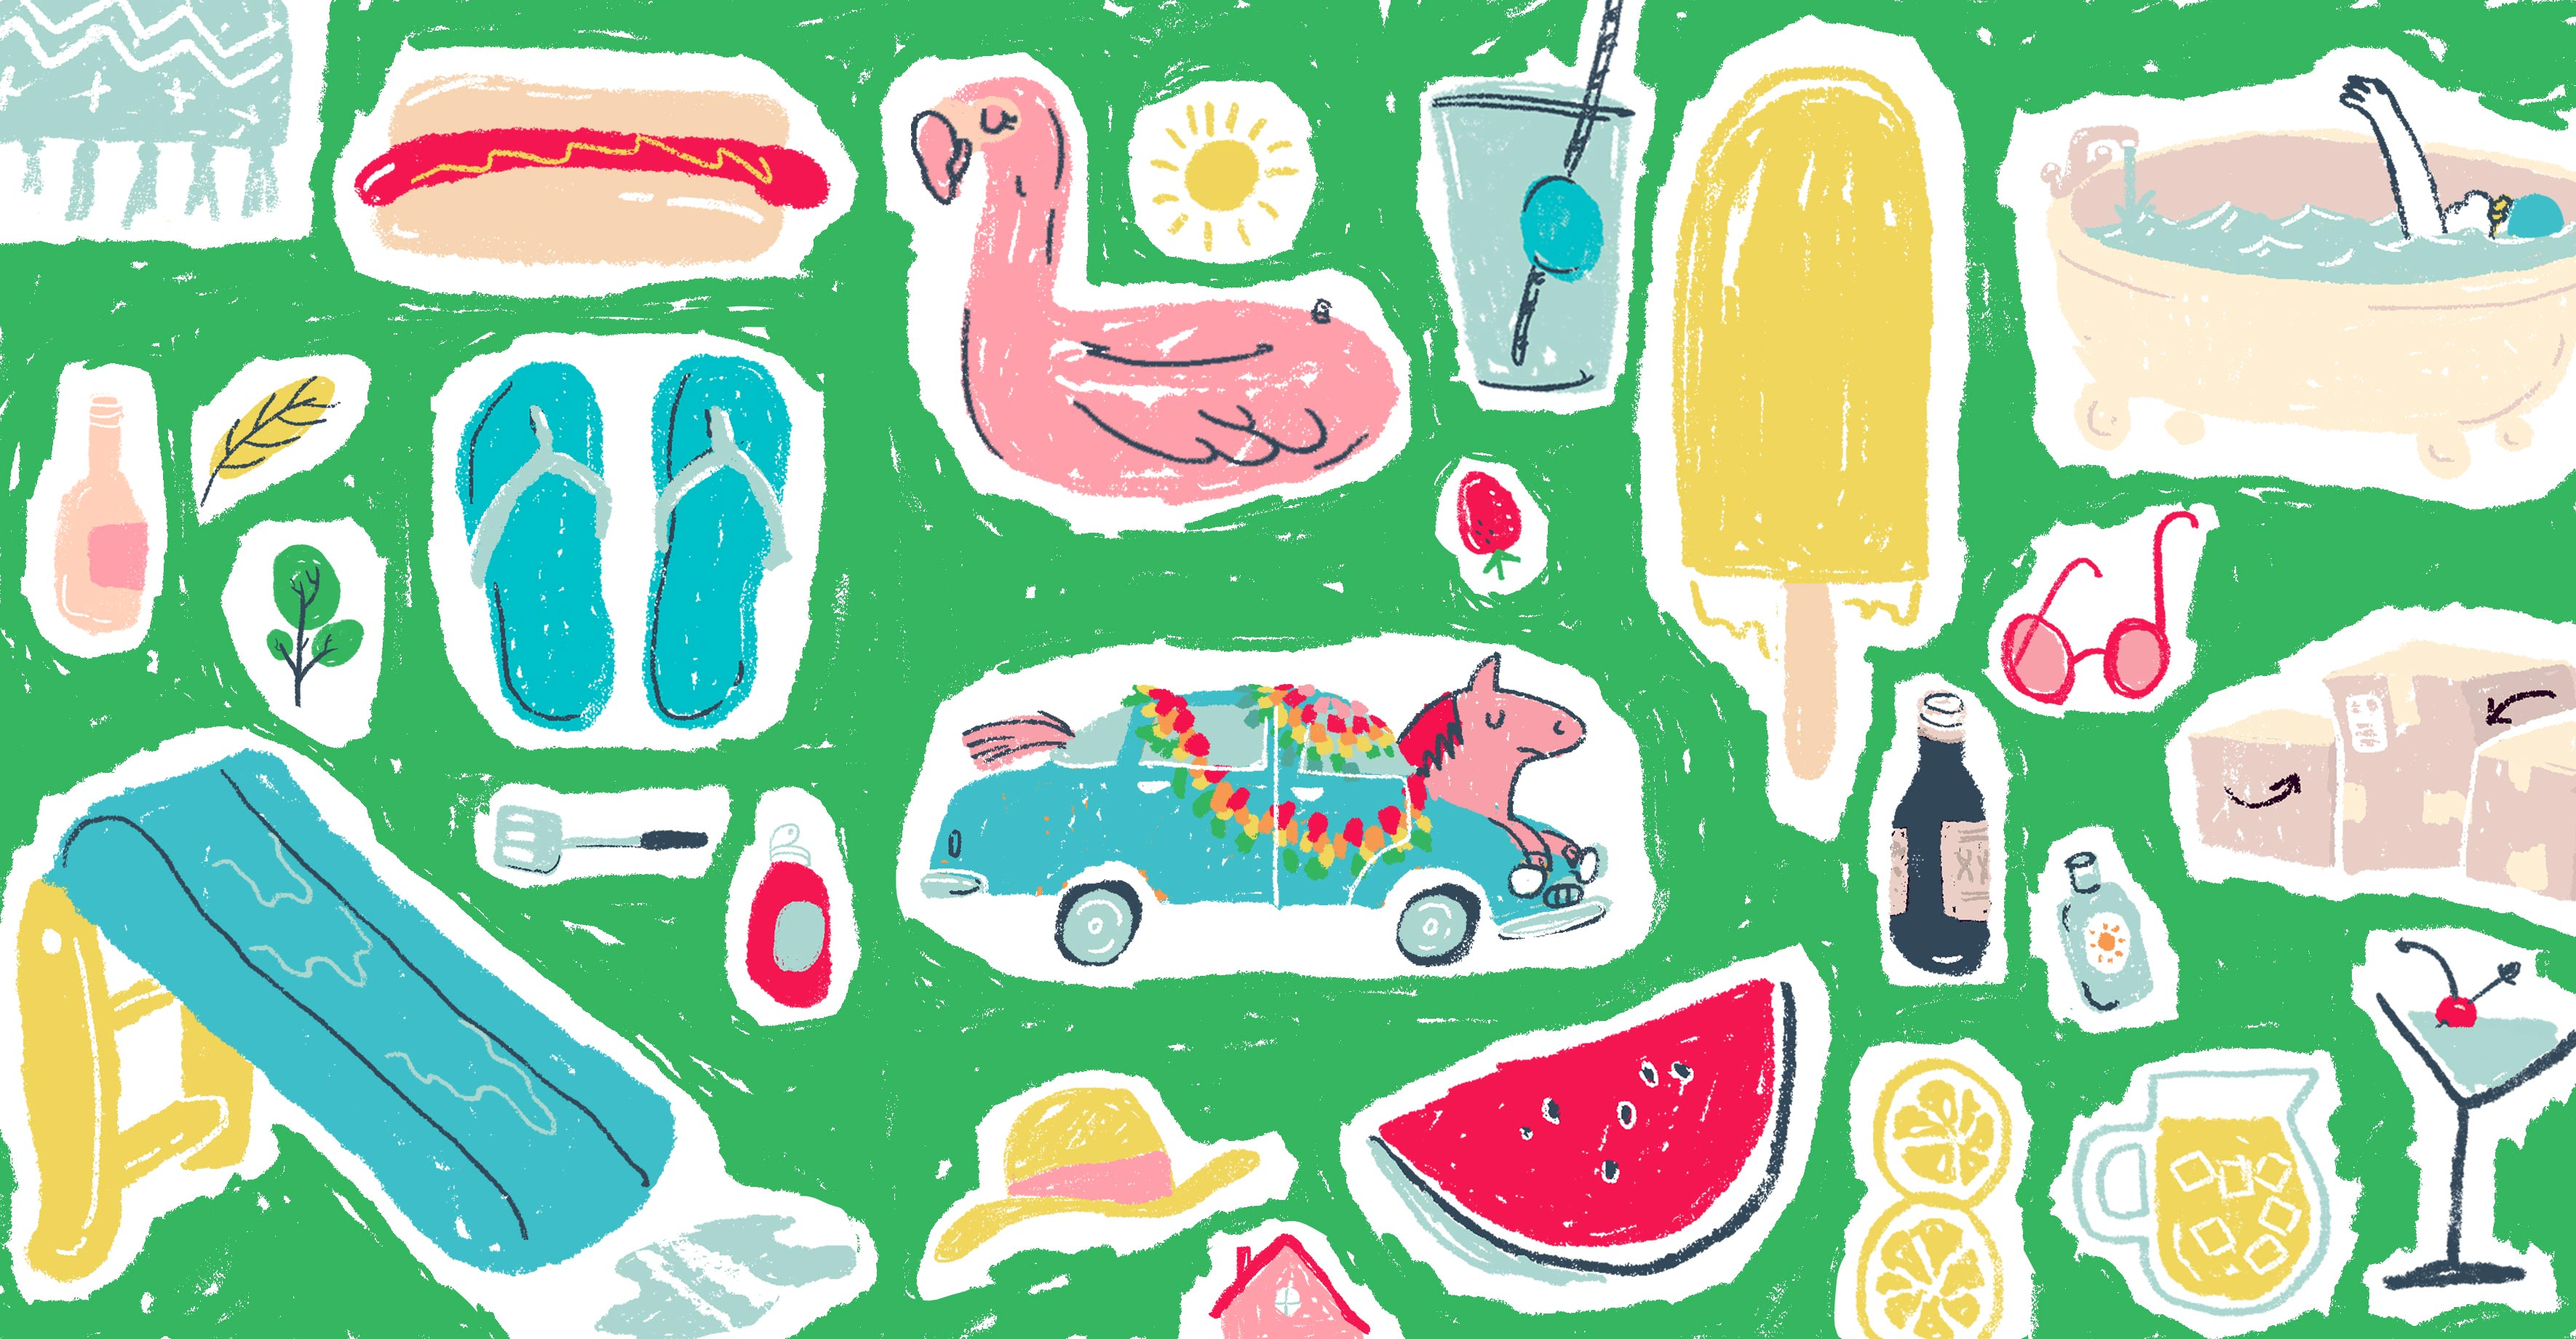 A horse parade car, waterslide, lemons, and other summer stuff.